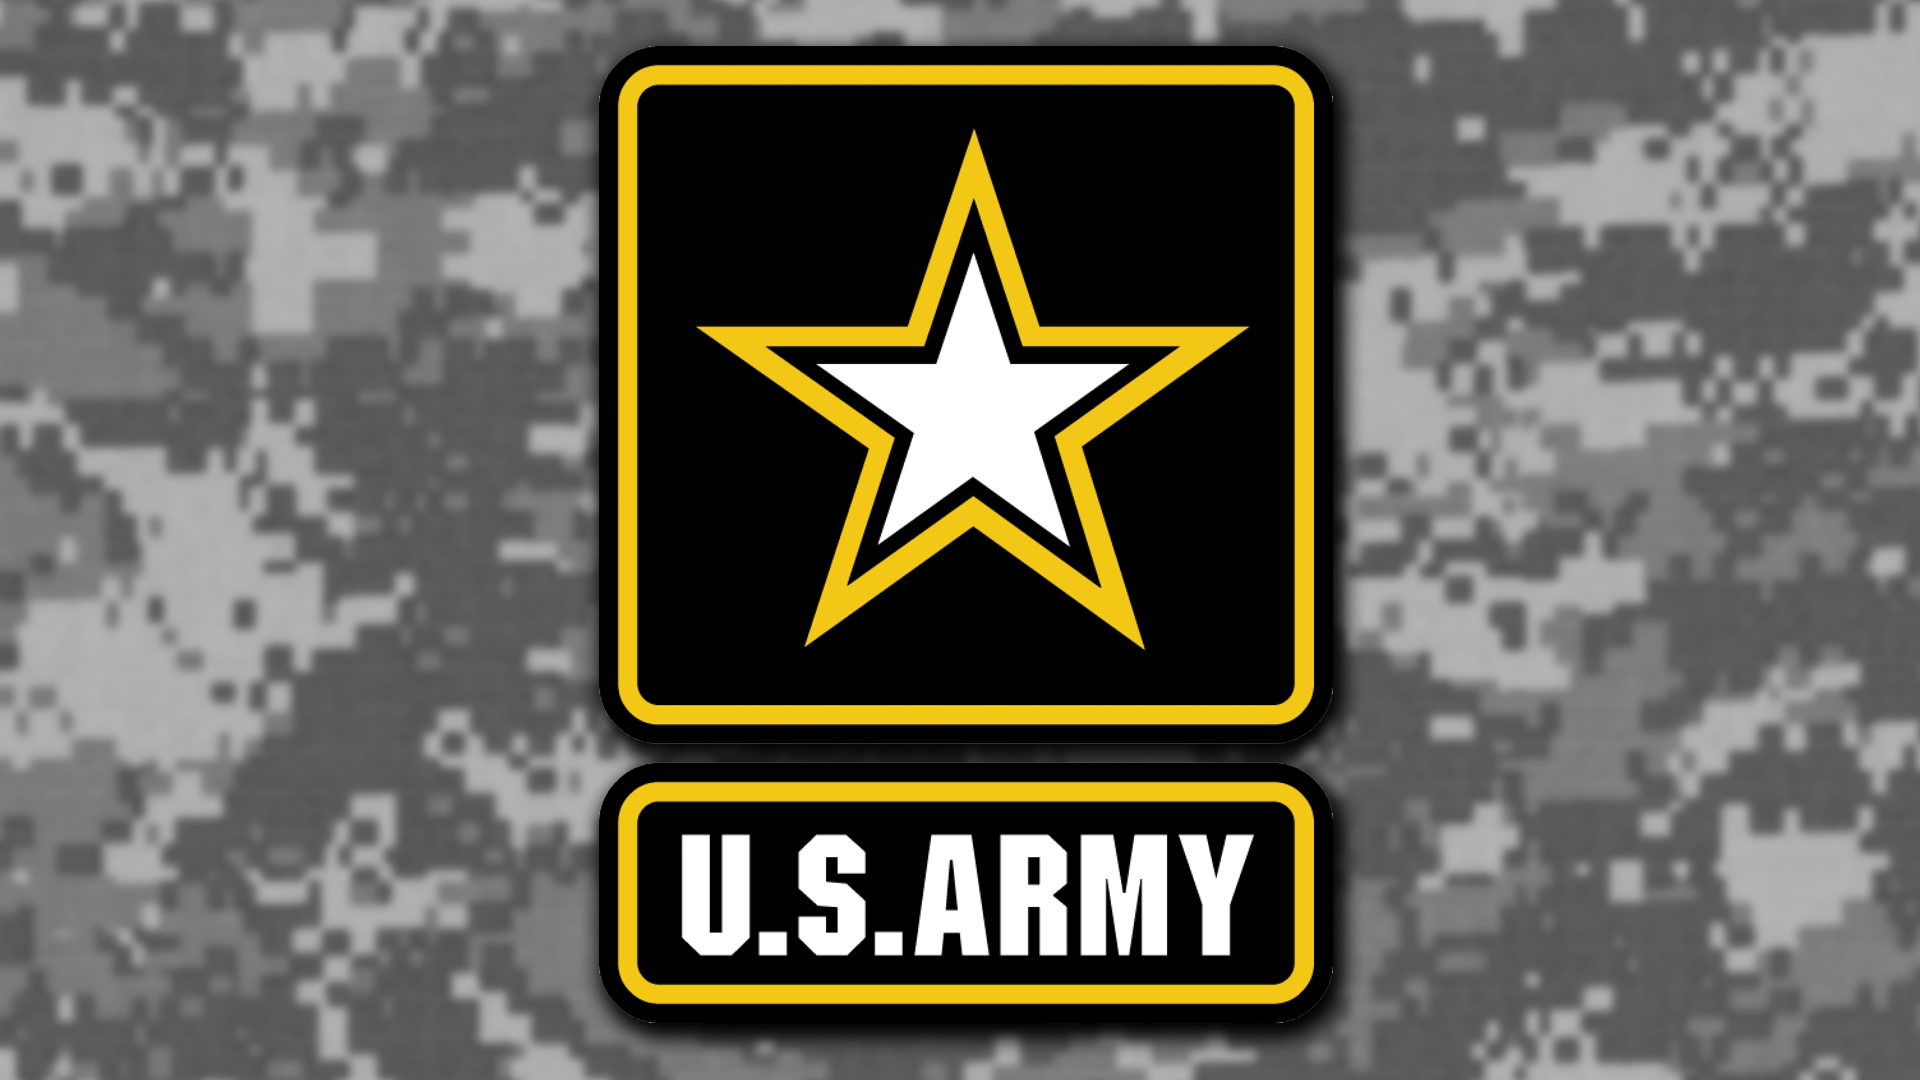 1035 US Army_1467778684388.png